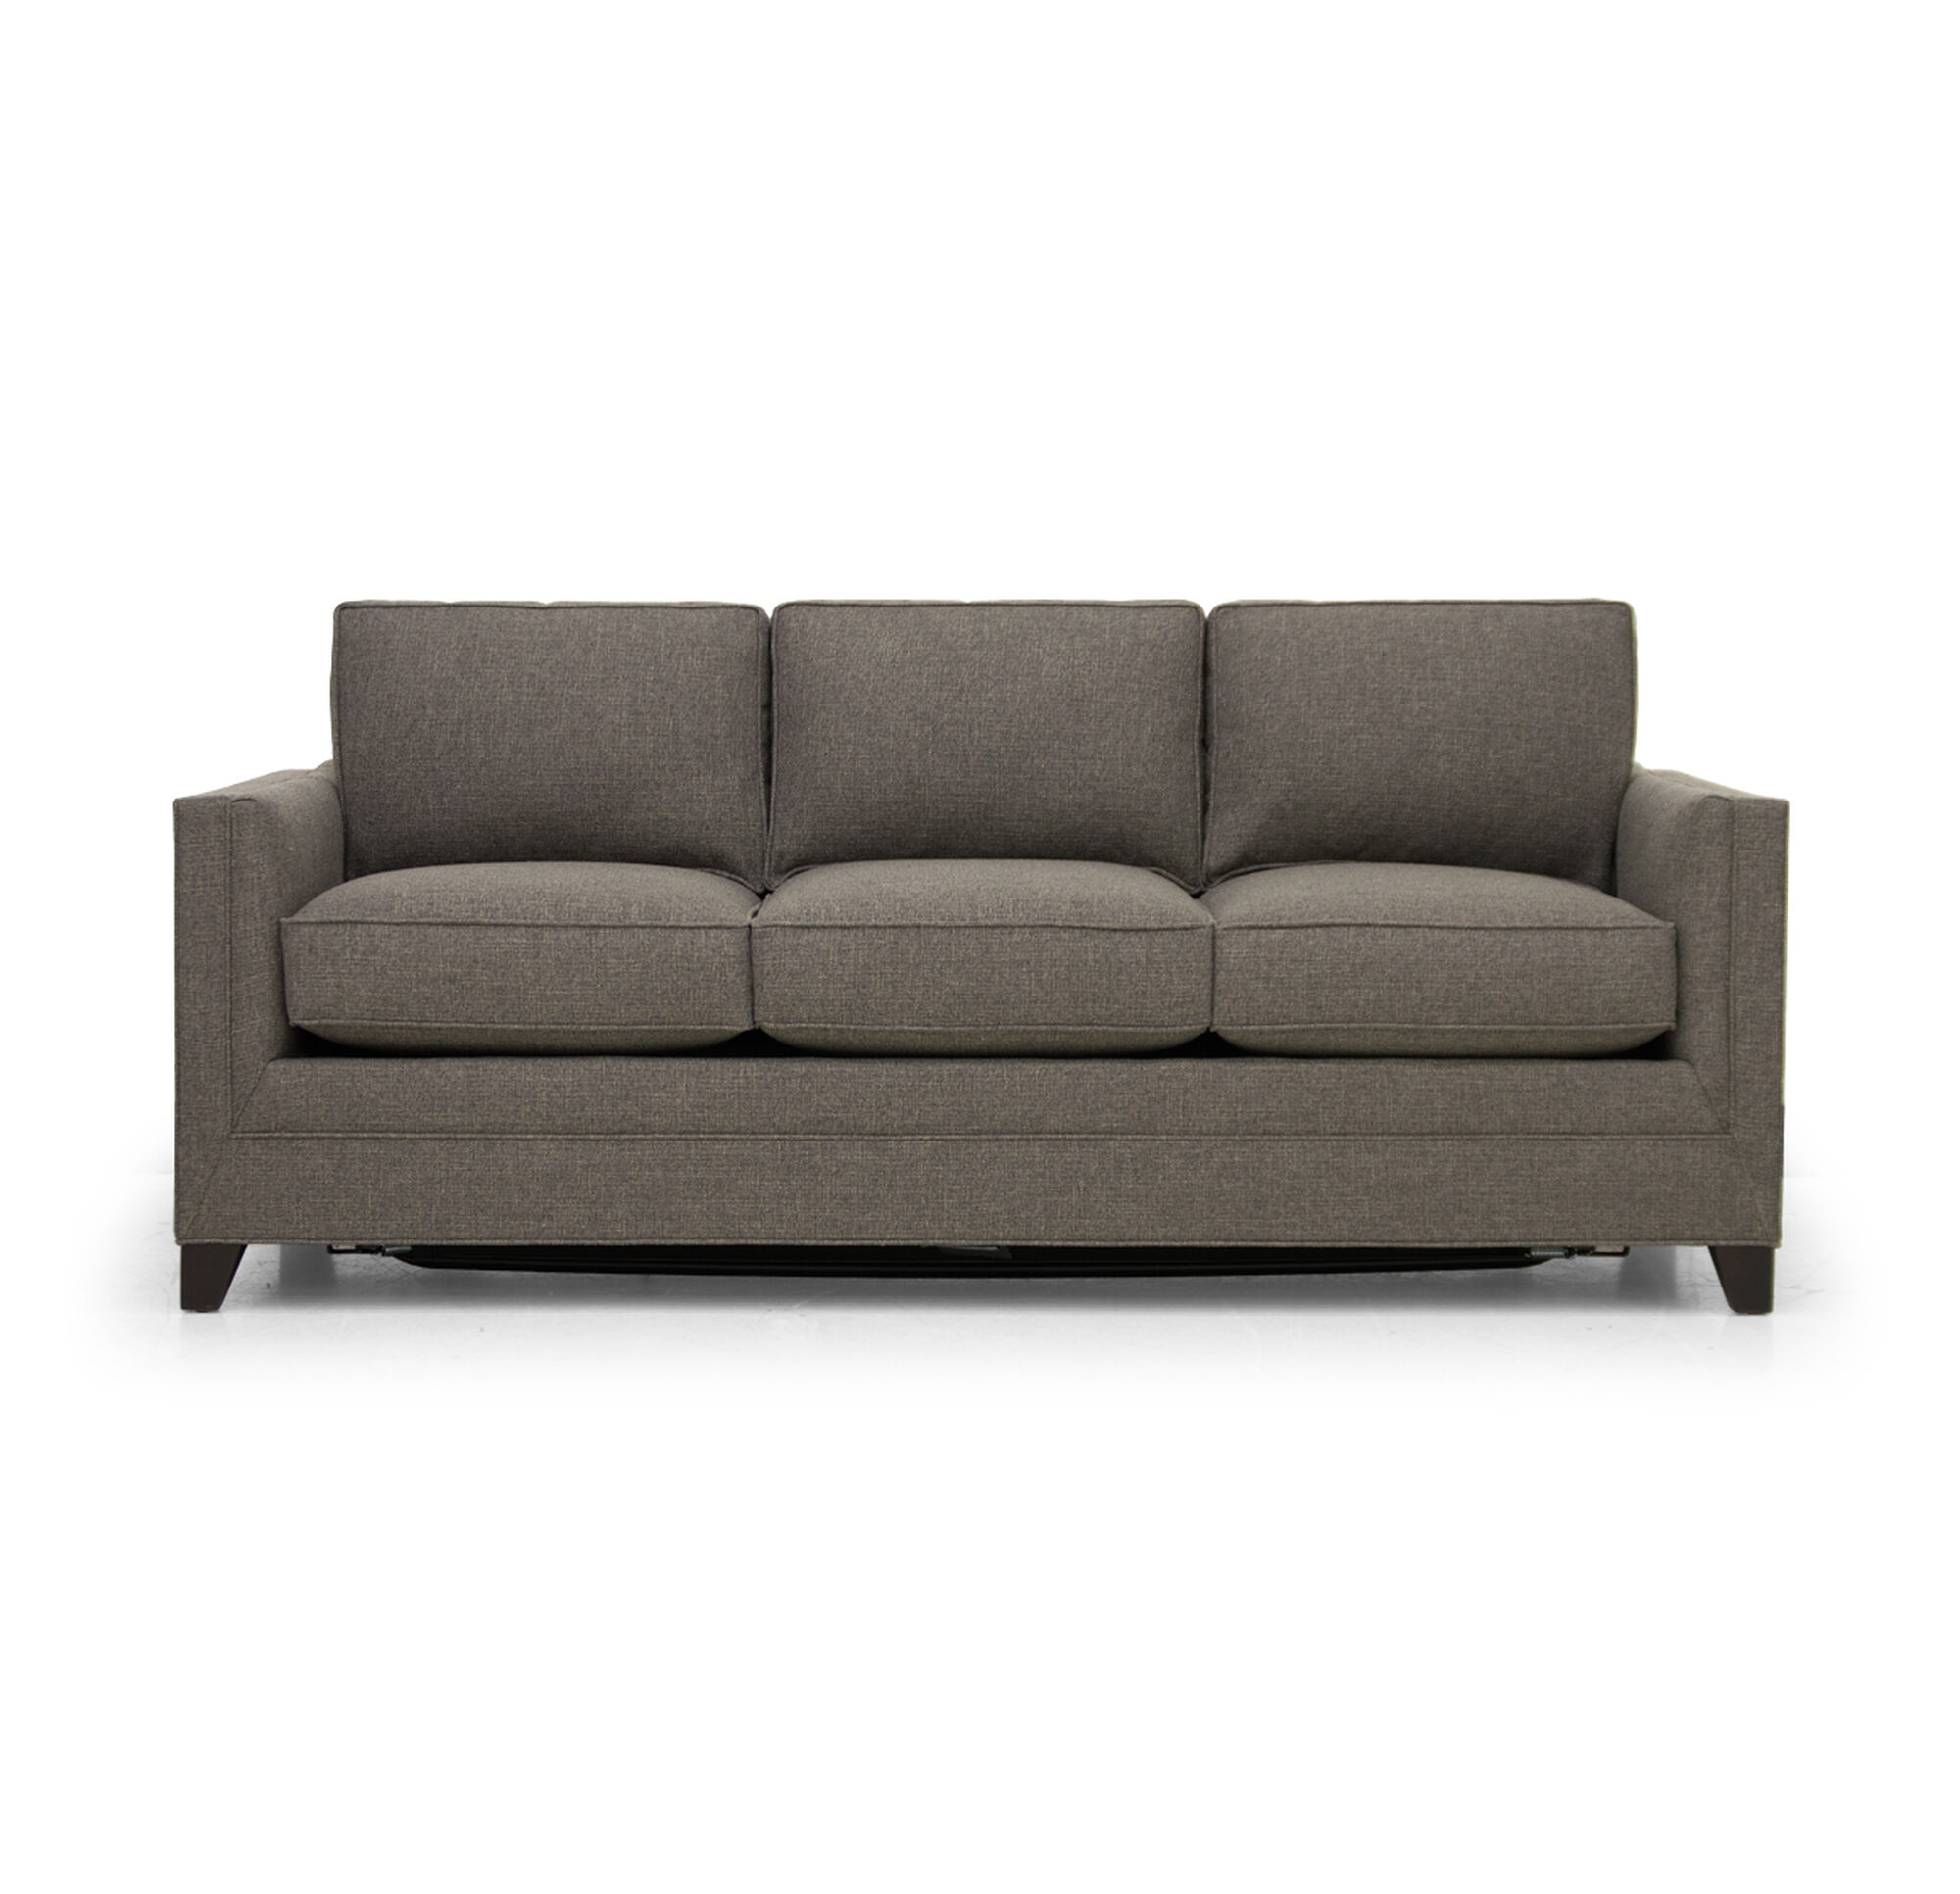 Reese Super Luxe Queen Sleeper Sofa ~ Sleeper Sofa With Real Mattress